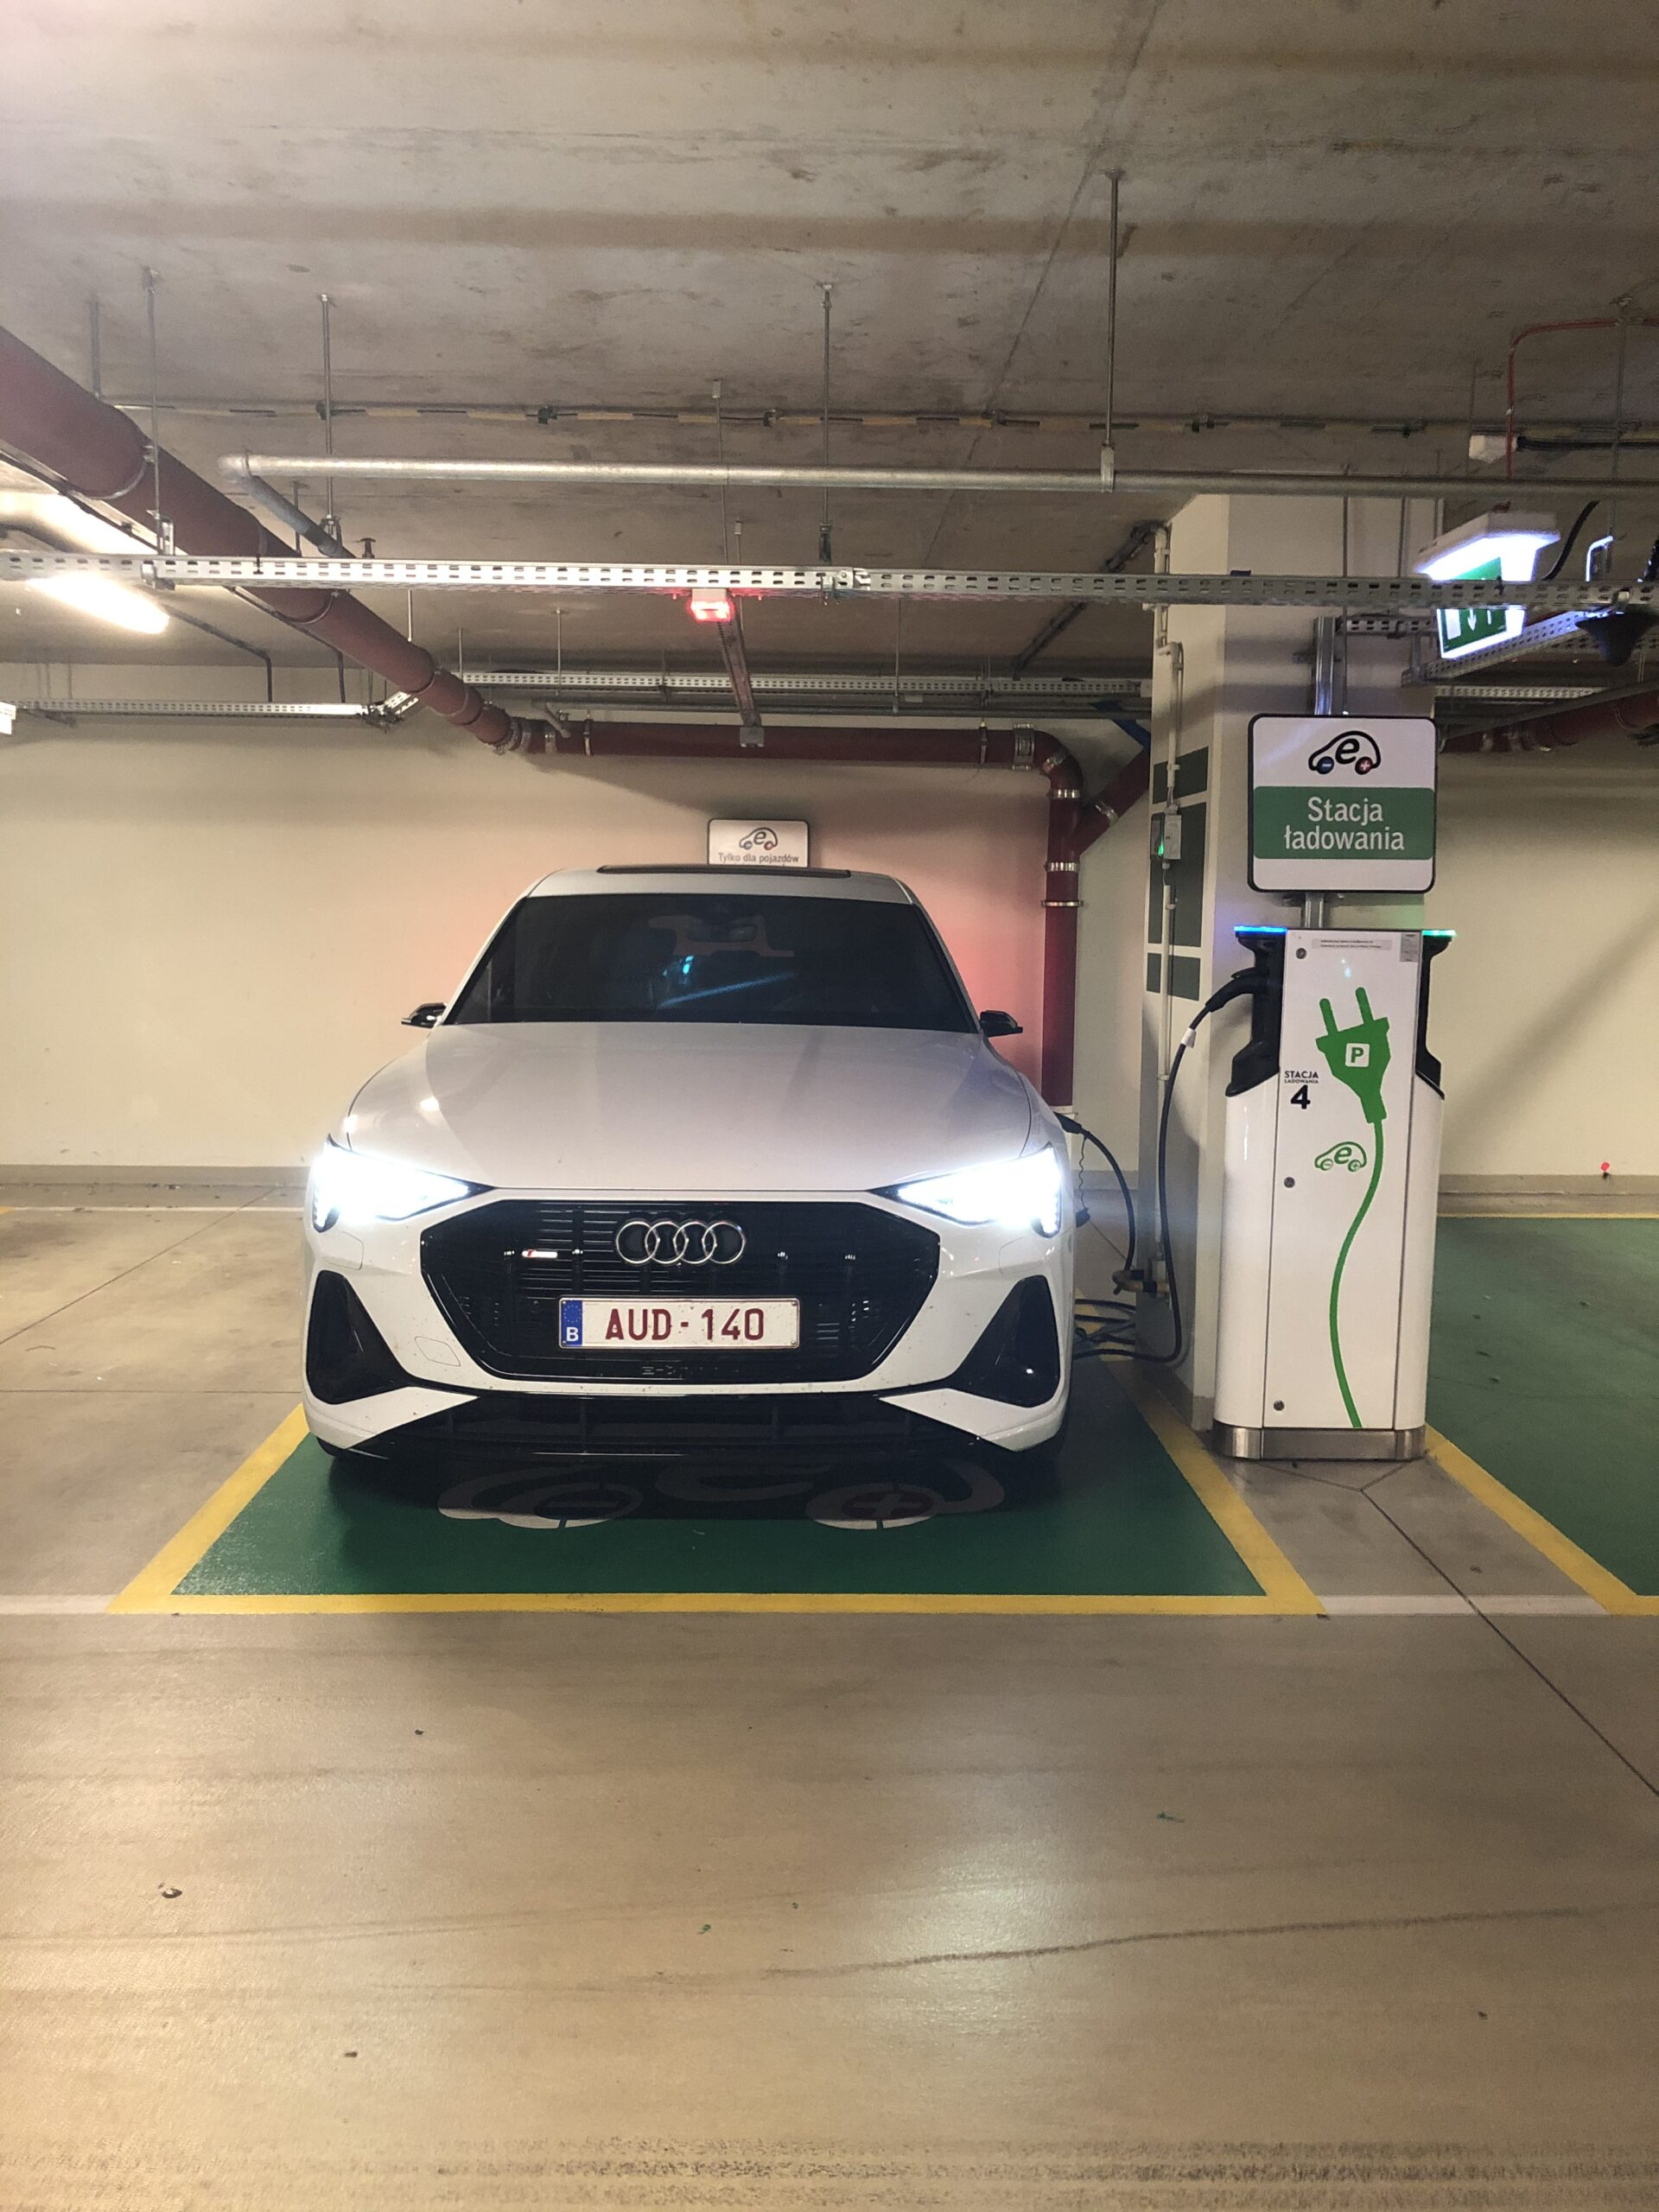 Audi e-tron Sportback charging in a public parking